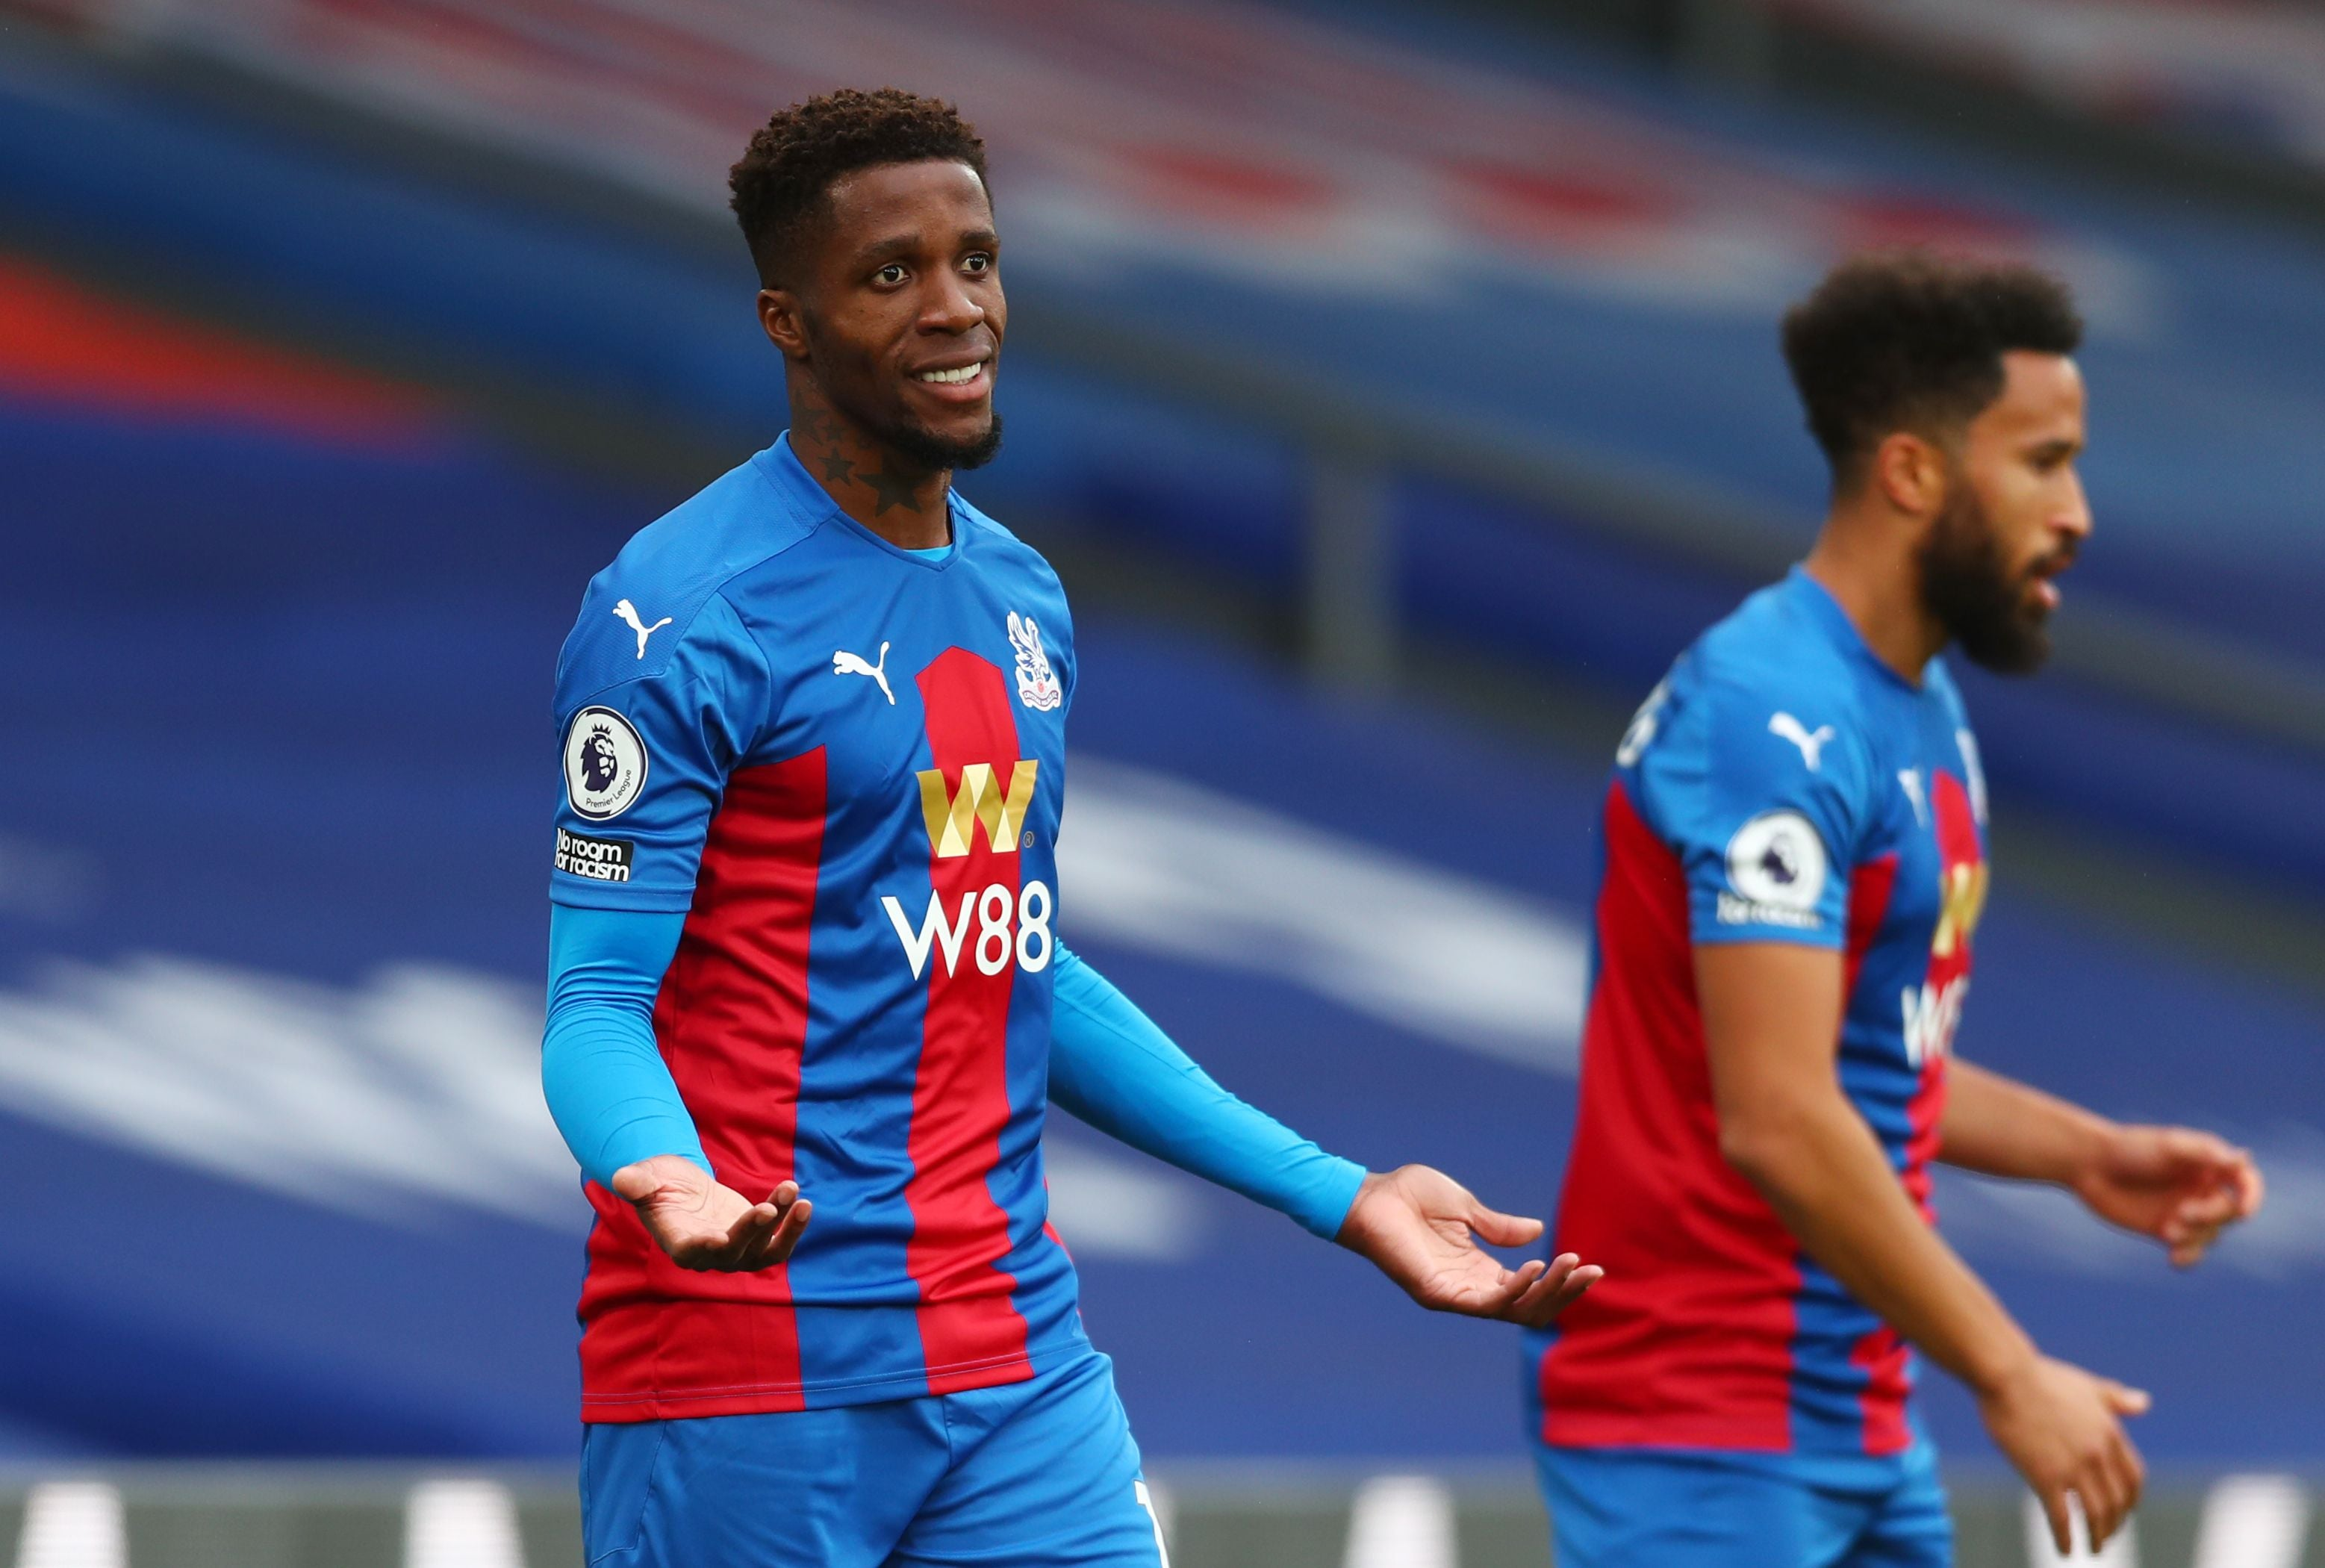 Crystal Palace vs Brighton LIVE: Latest score, goals and updates from Premier League fixture today